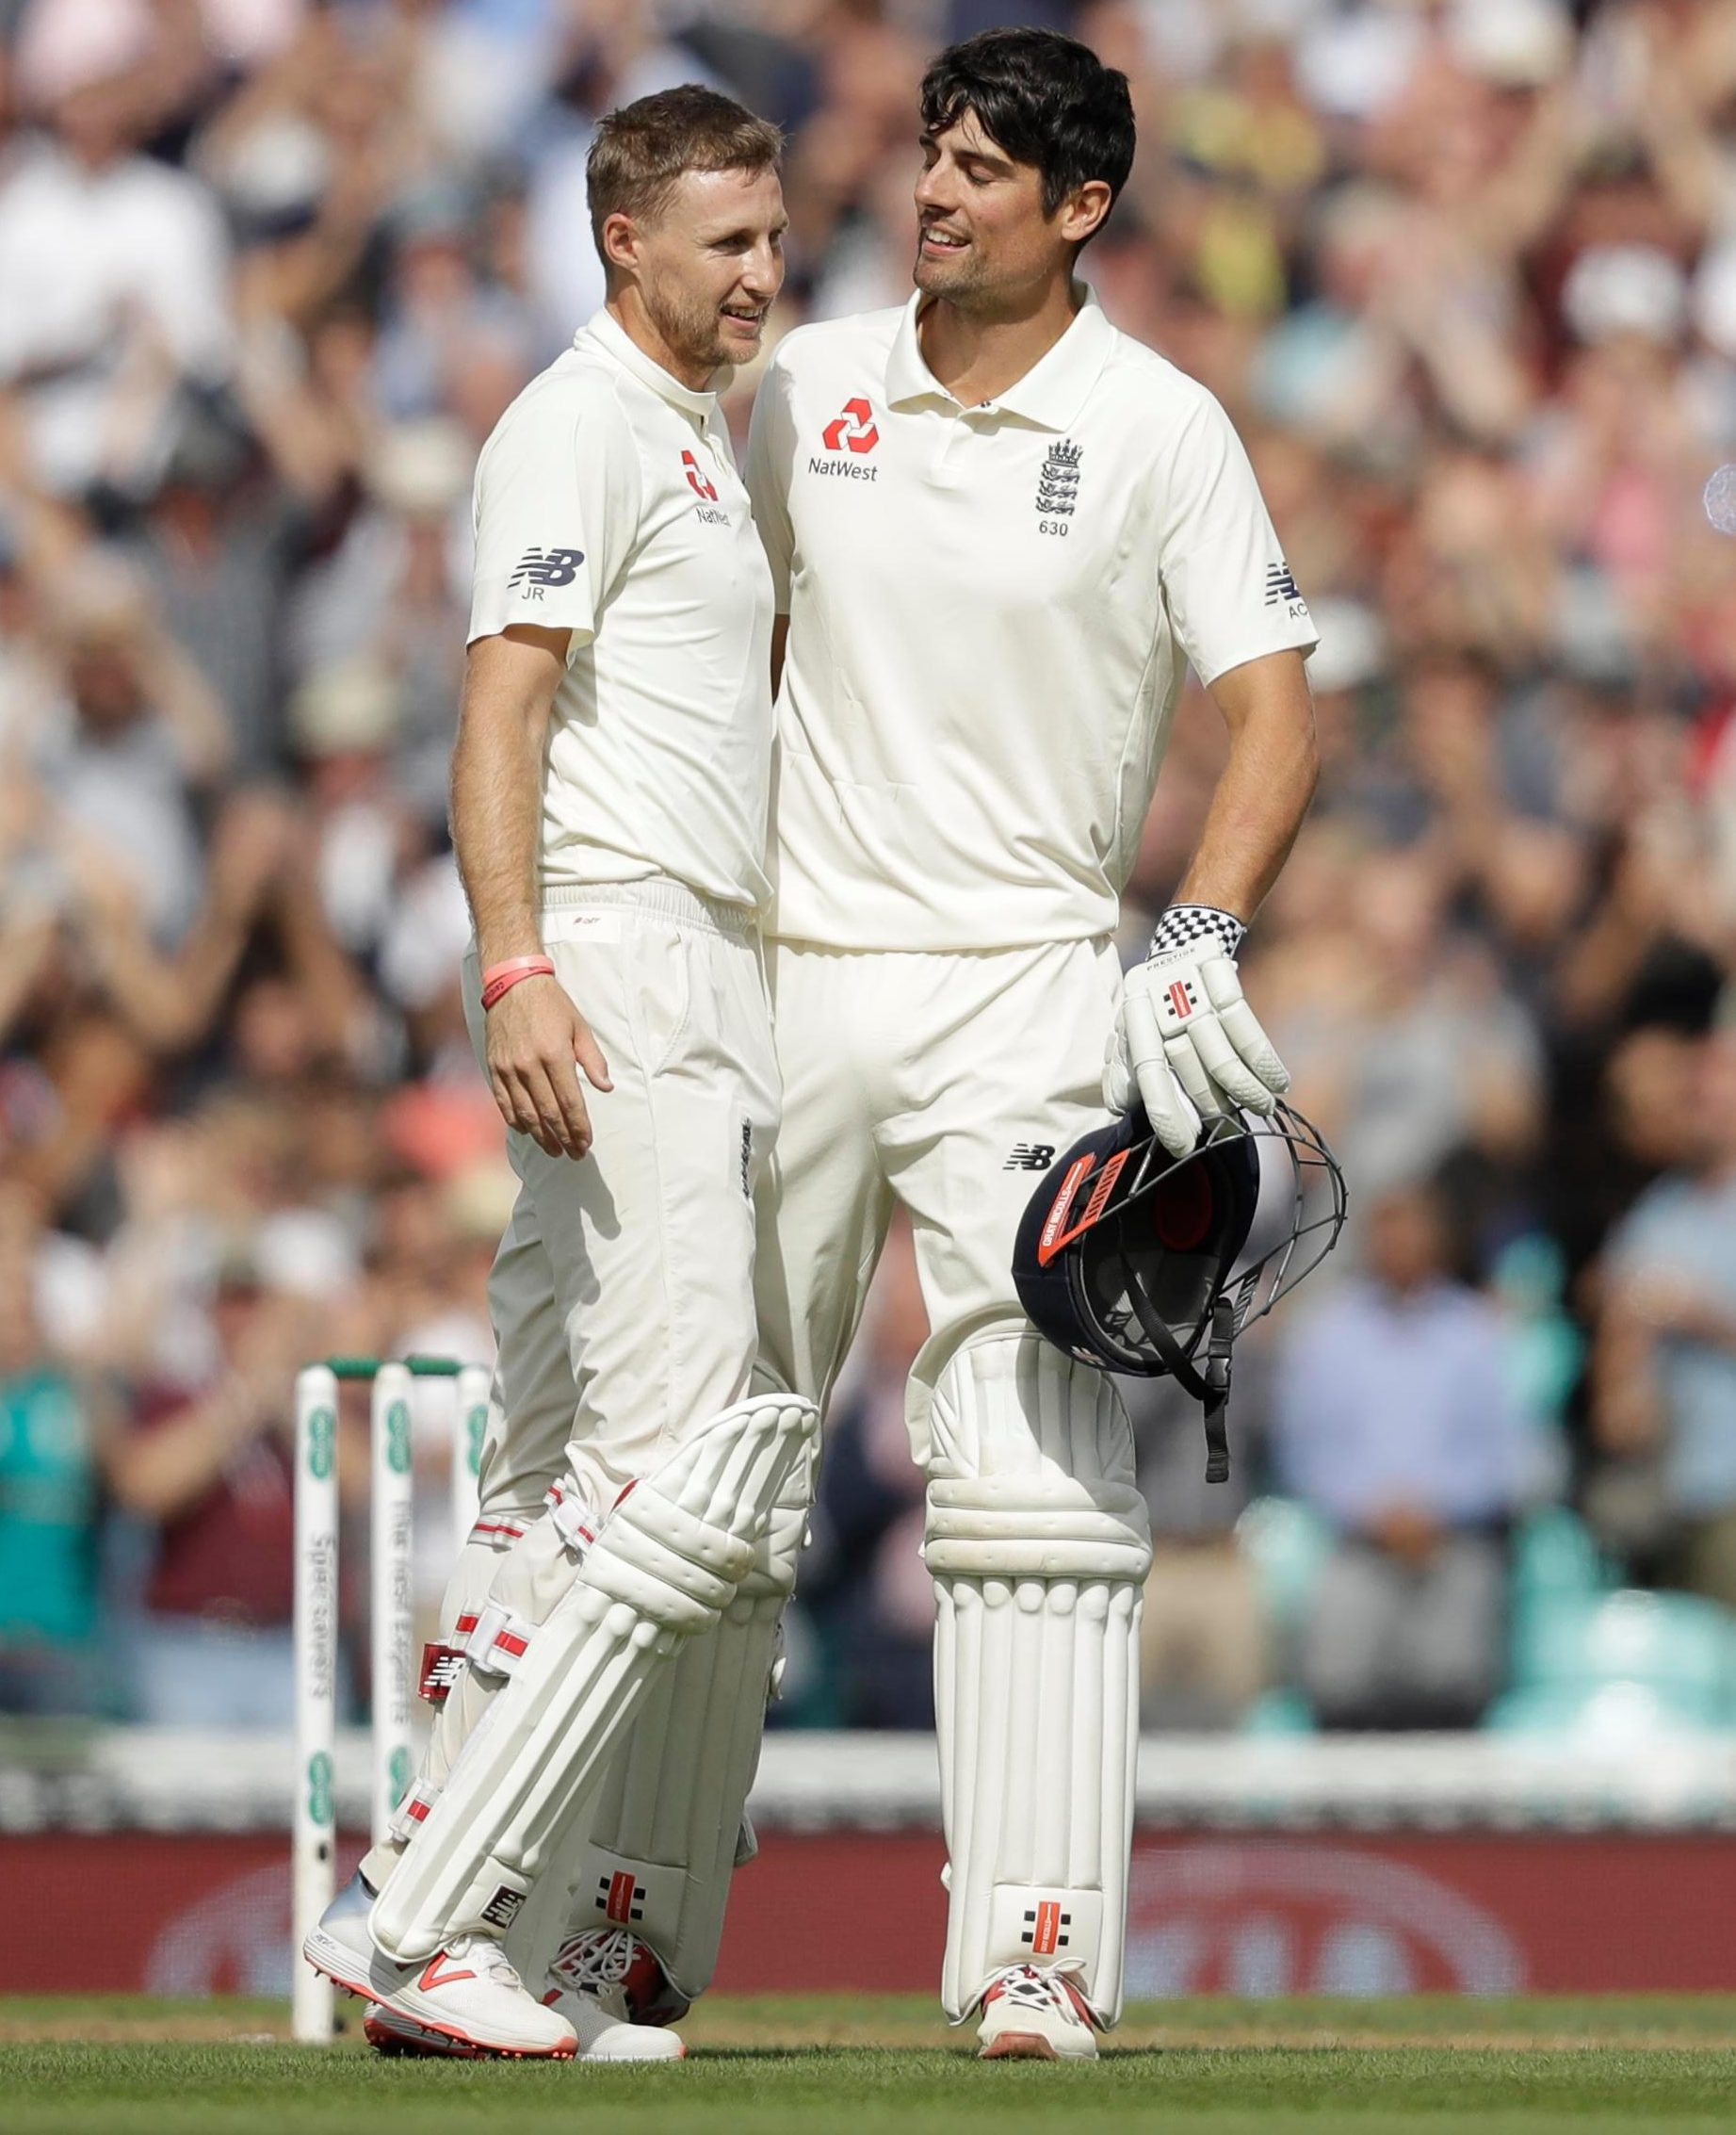 Joe Root embraced his predecessor as England captain as he secured a 33rd Test hundred thanks to an overthrow